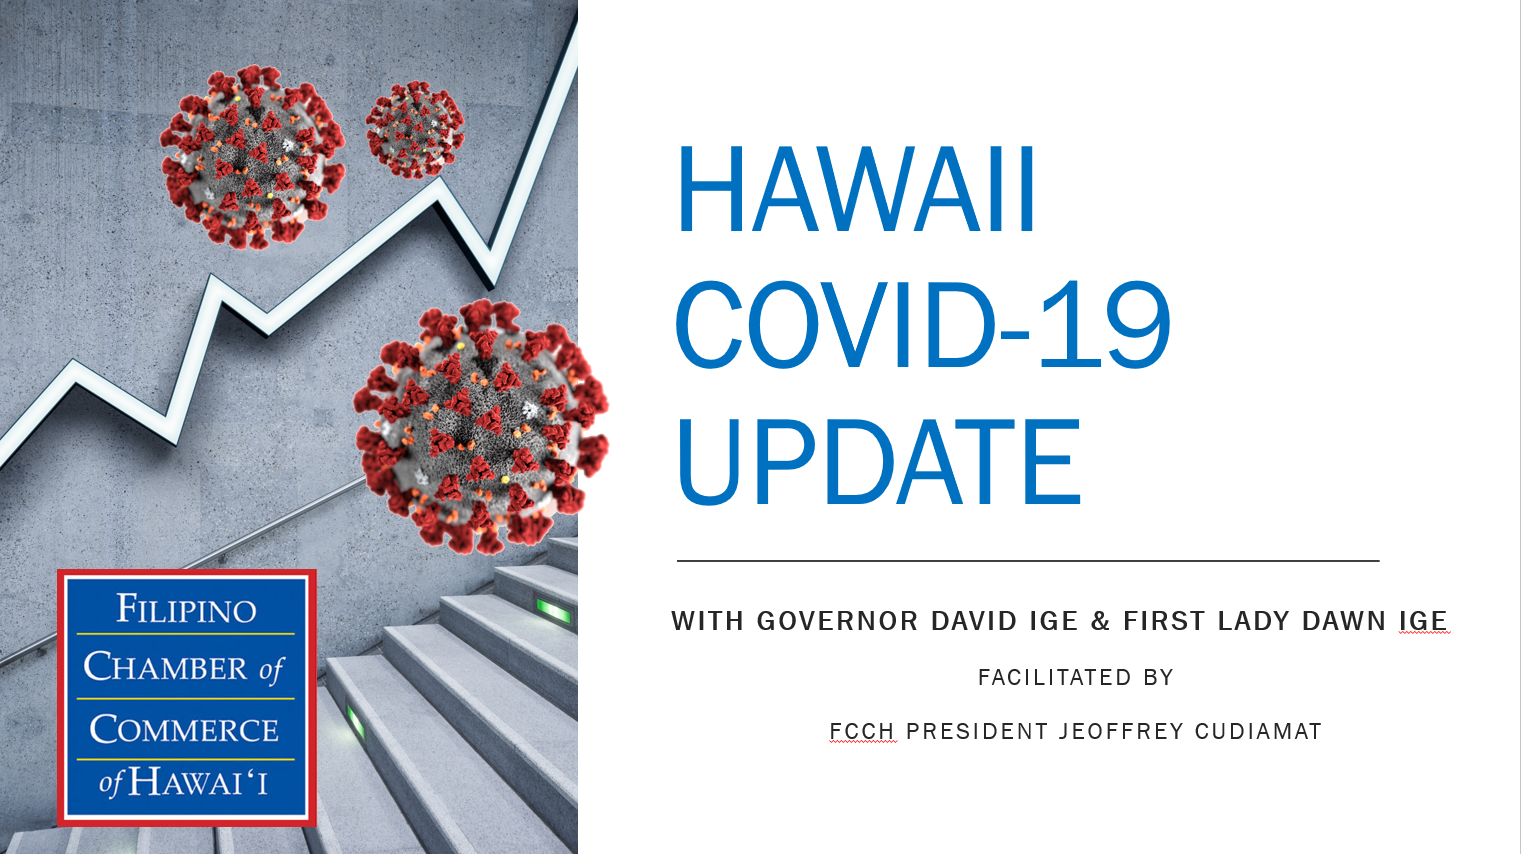 Hawaii Covid Update Cover